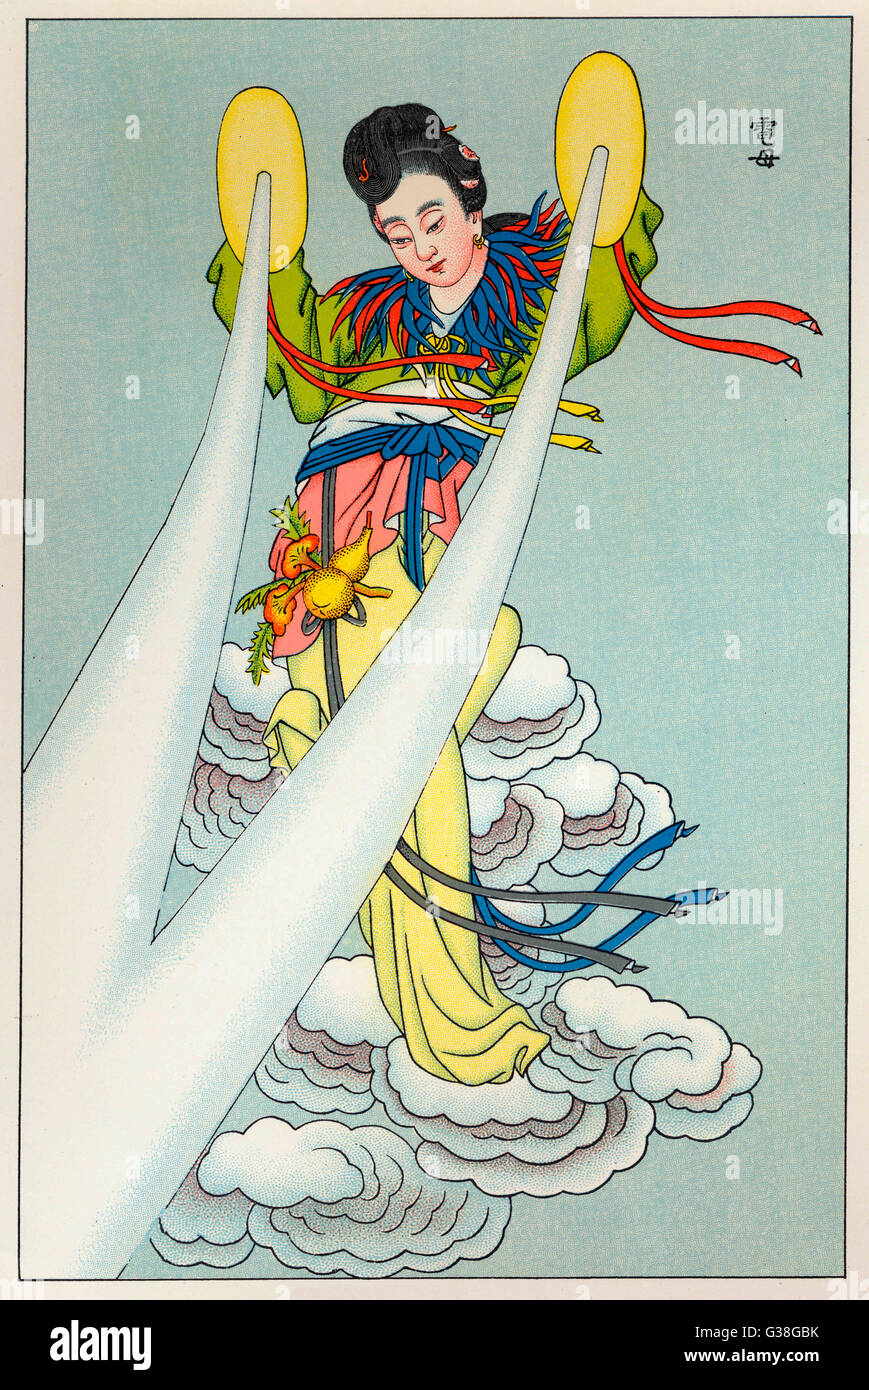 TIEN-MOU the Mother of Lightning         Date: 1915 - Stock Image